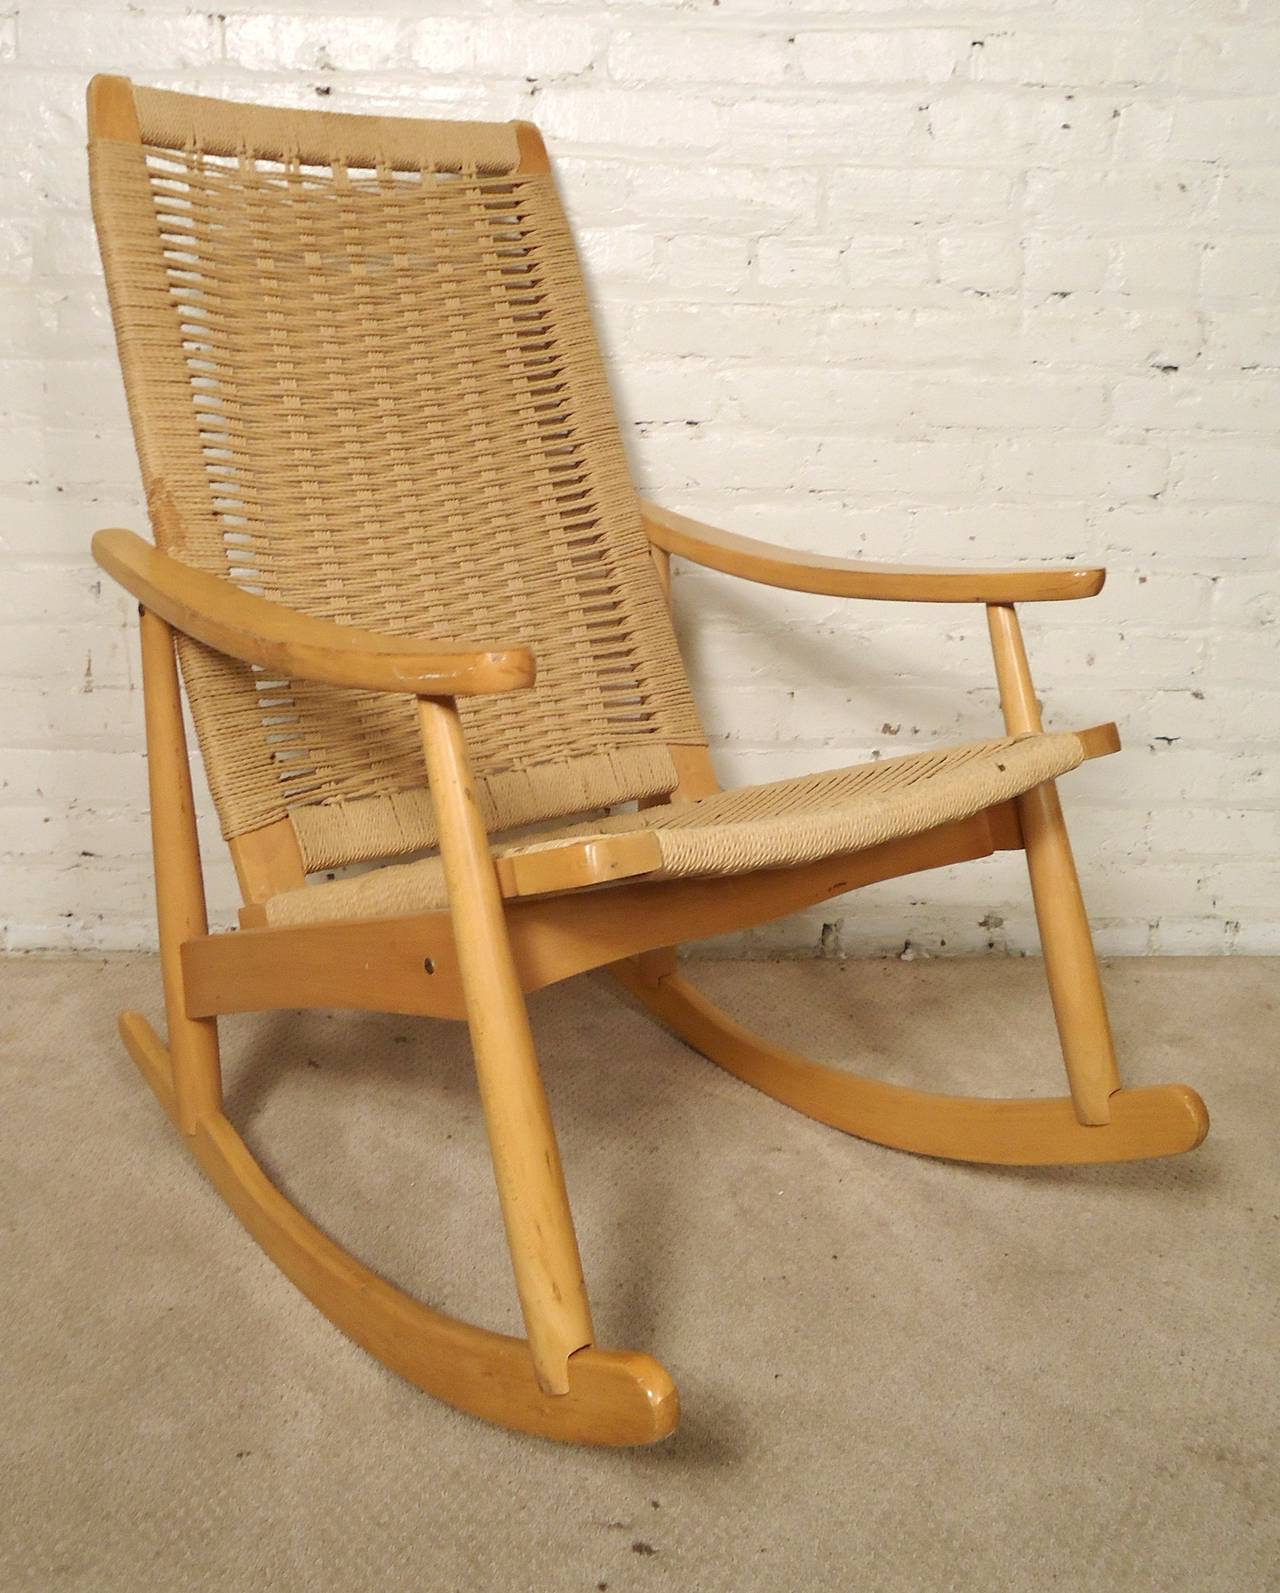 hans wegner rocking chair table and chairs kids style rope at 1stdibs